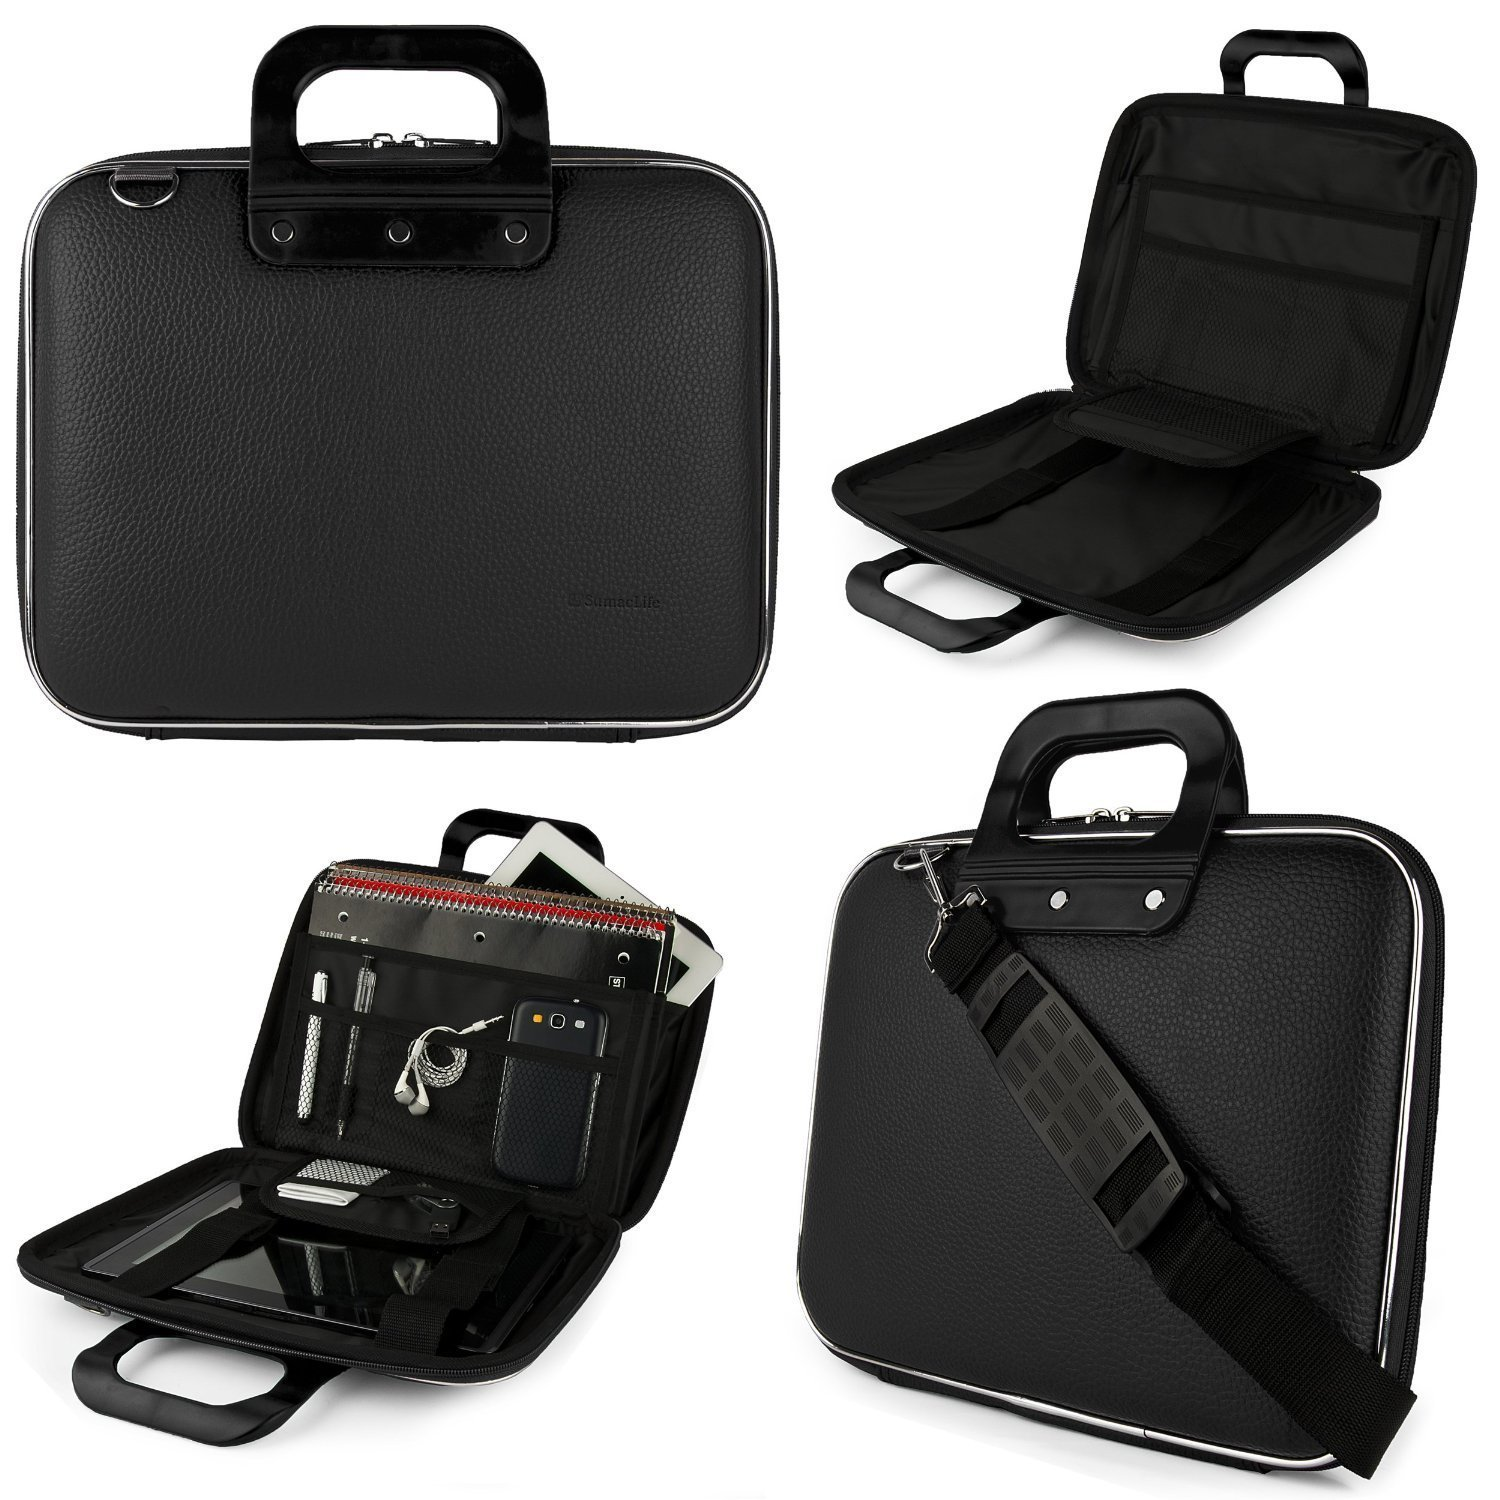 "Universal Laptop Bag Messenger Bag Carrying Case 10.1""-12.5"" for Hp Pavilion / Stream / Chromebook / ProBook / Pro x2 / Acer Aspire / One / Chromebook"